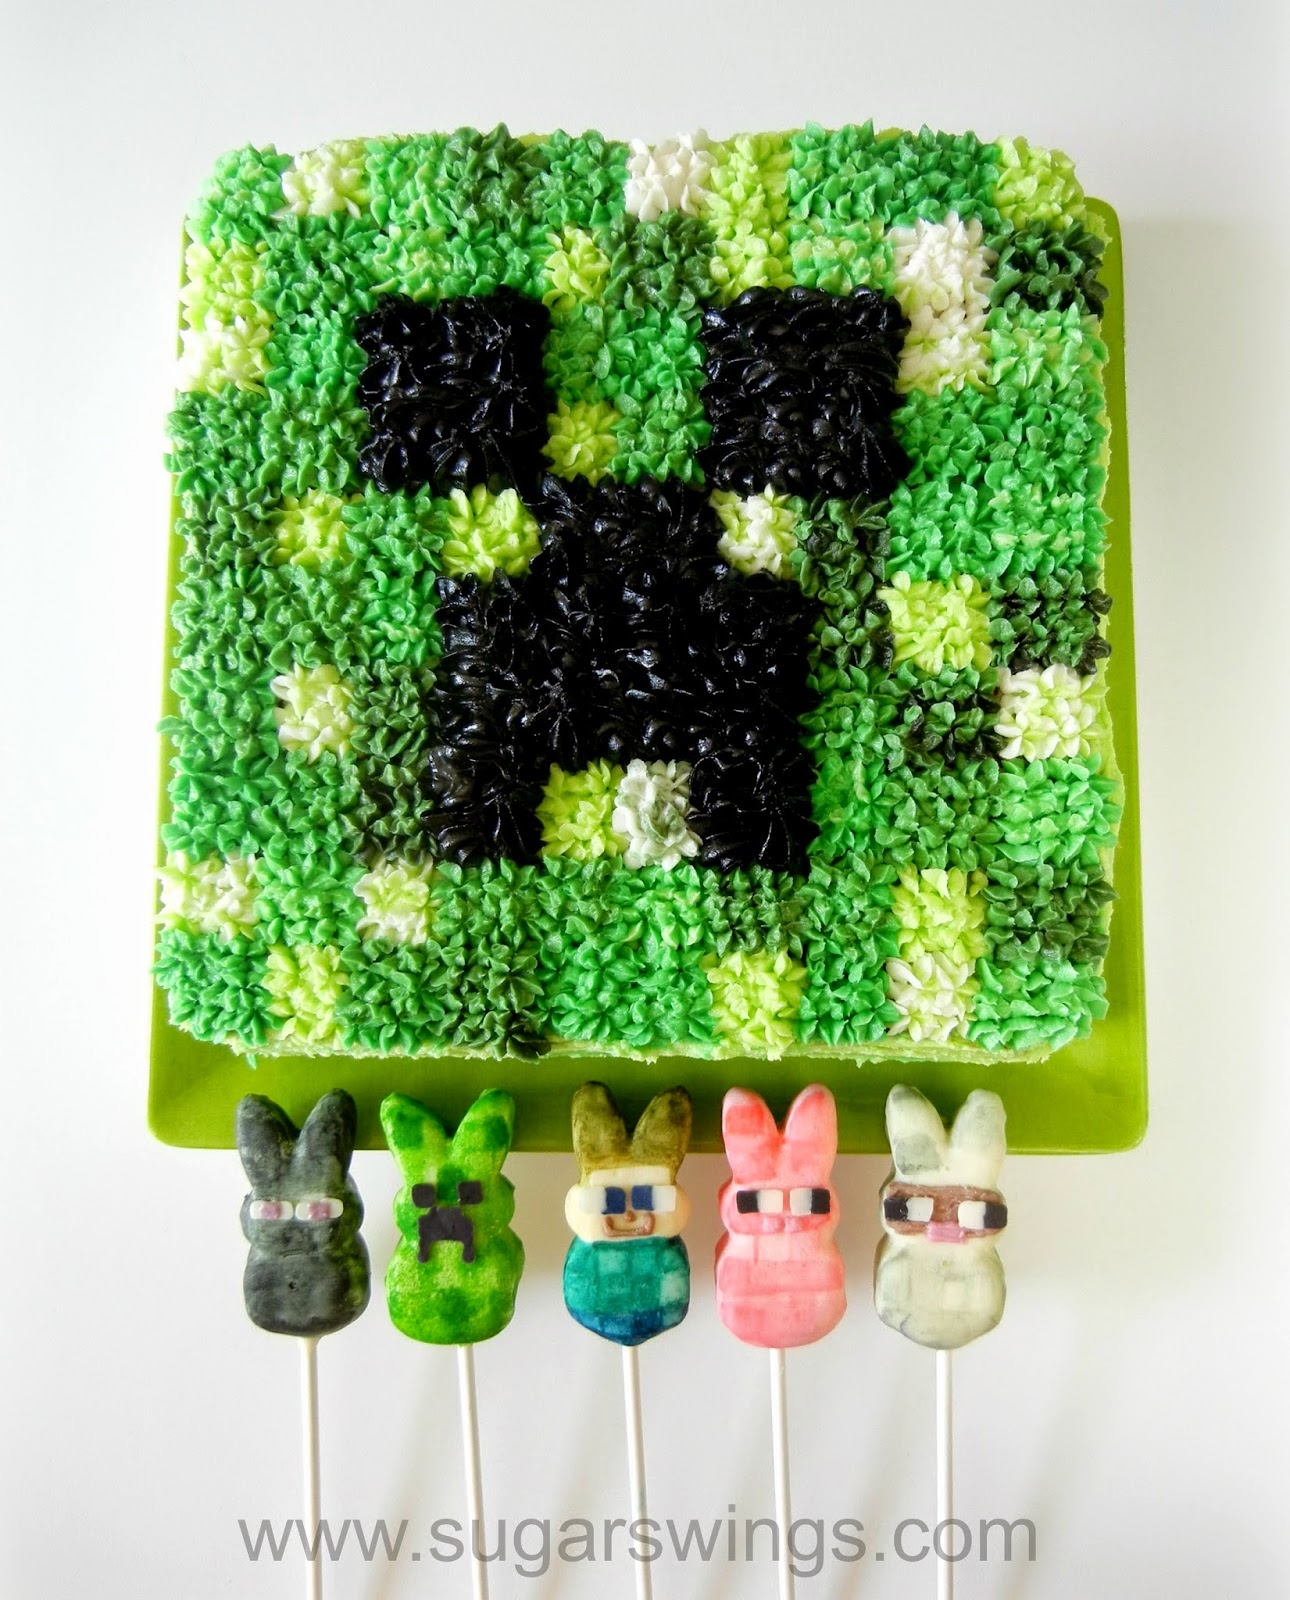 Sugar Swings Serve Some Minecraft Creeper Cake And